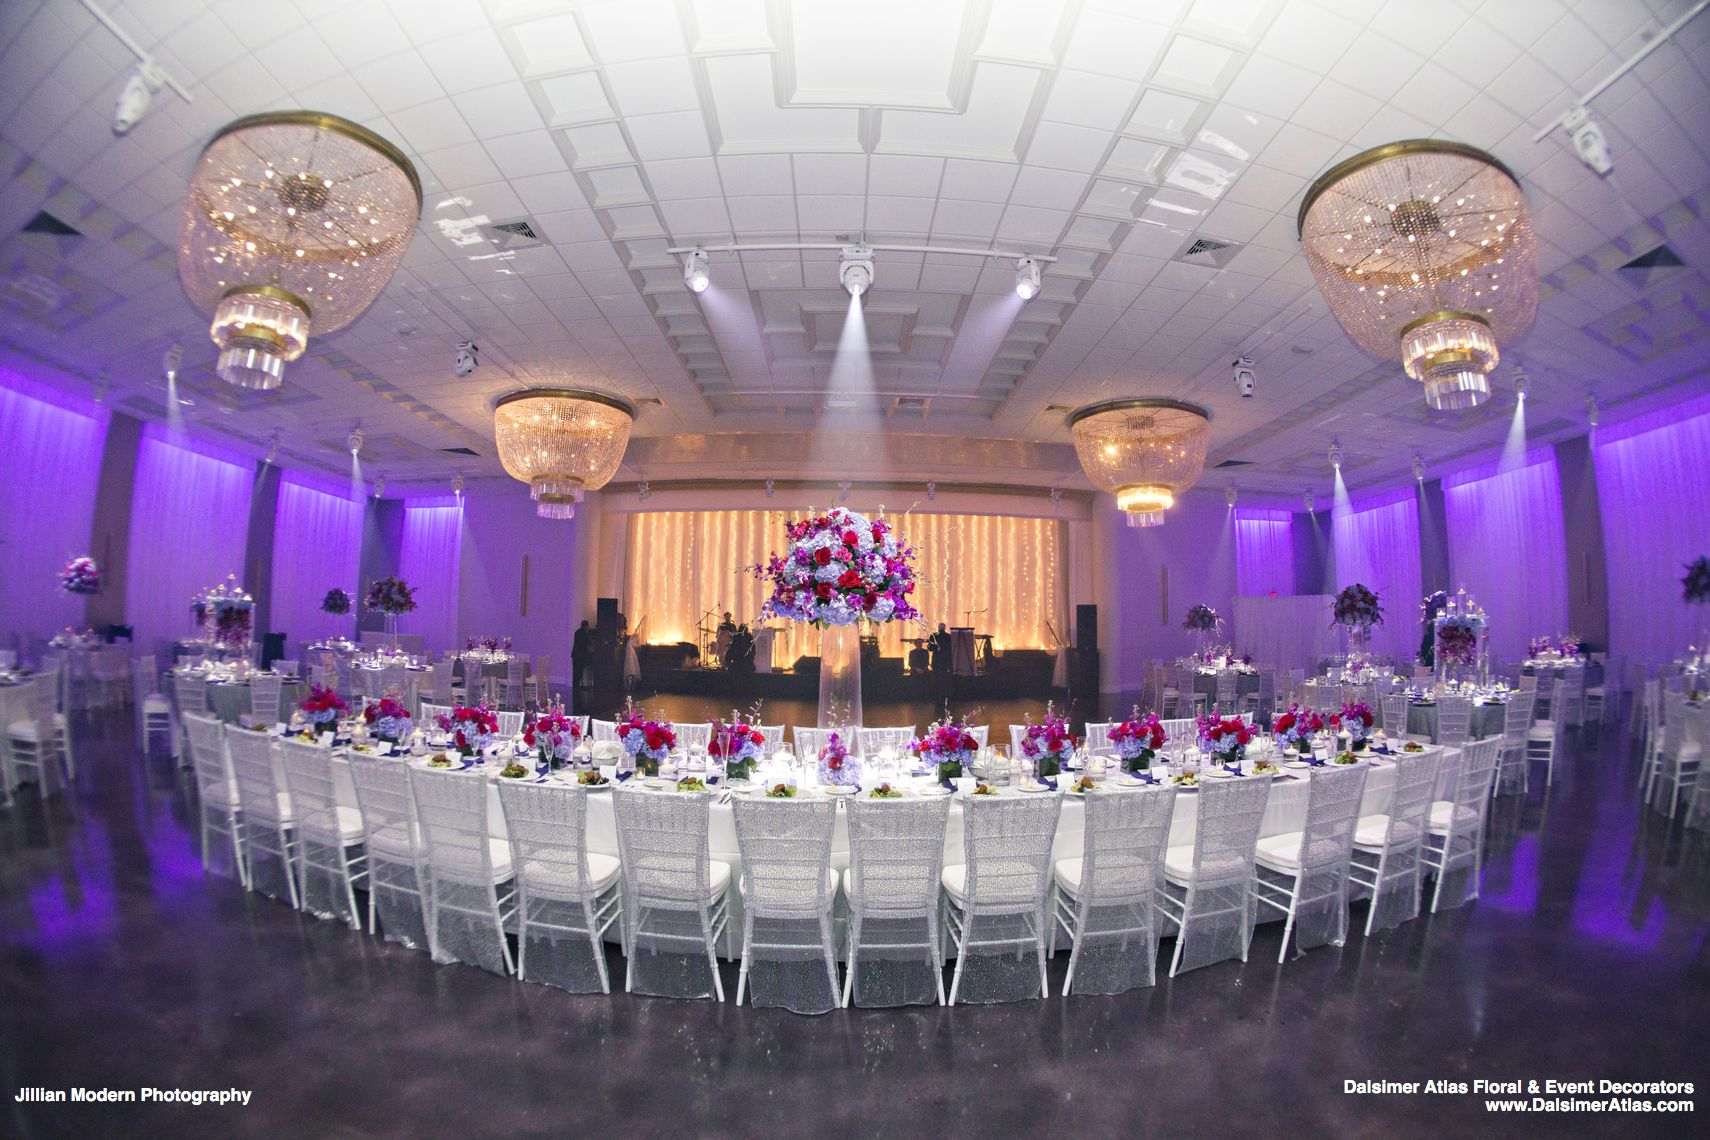 Tremendous Color and Style Made This Wedding Look Fabulous